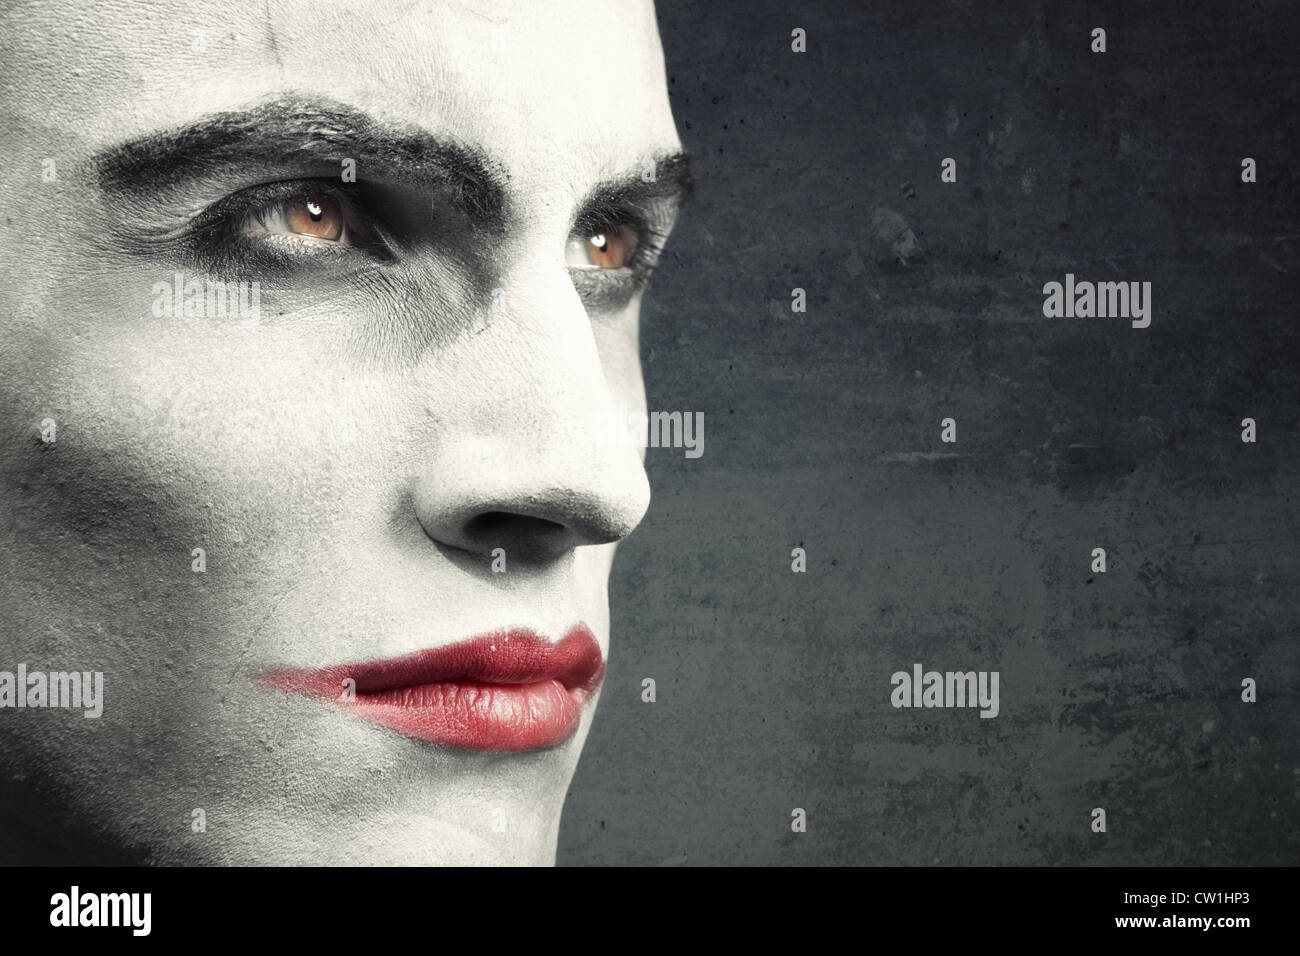 Man with vampire makeup on a dark grungy background. Natural makeup and background. Text can be added onto the empty - Stock Image